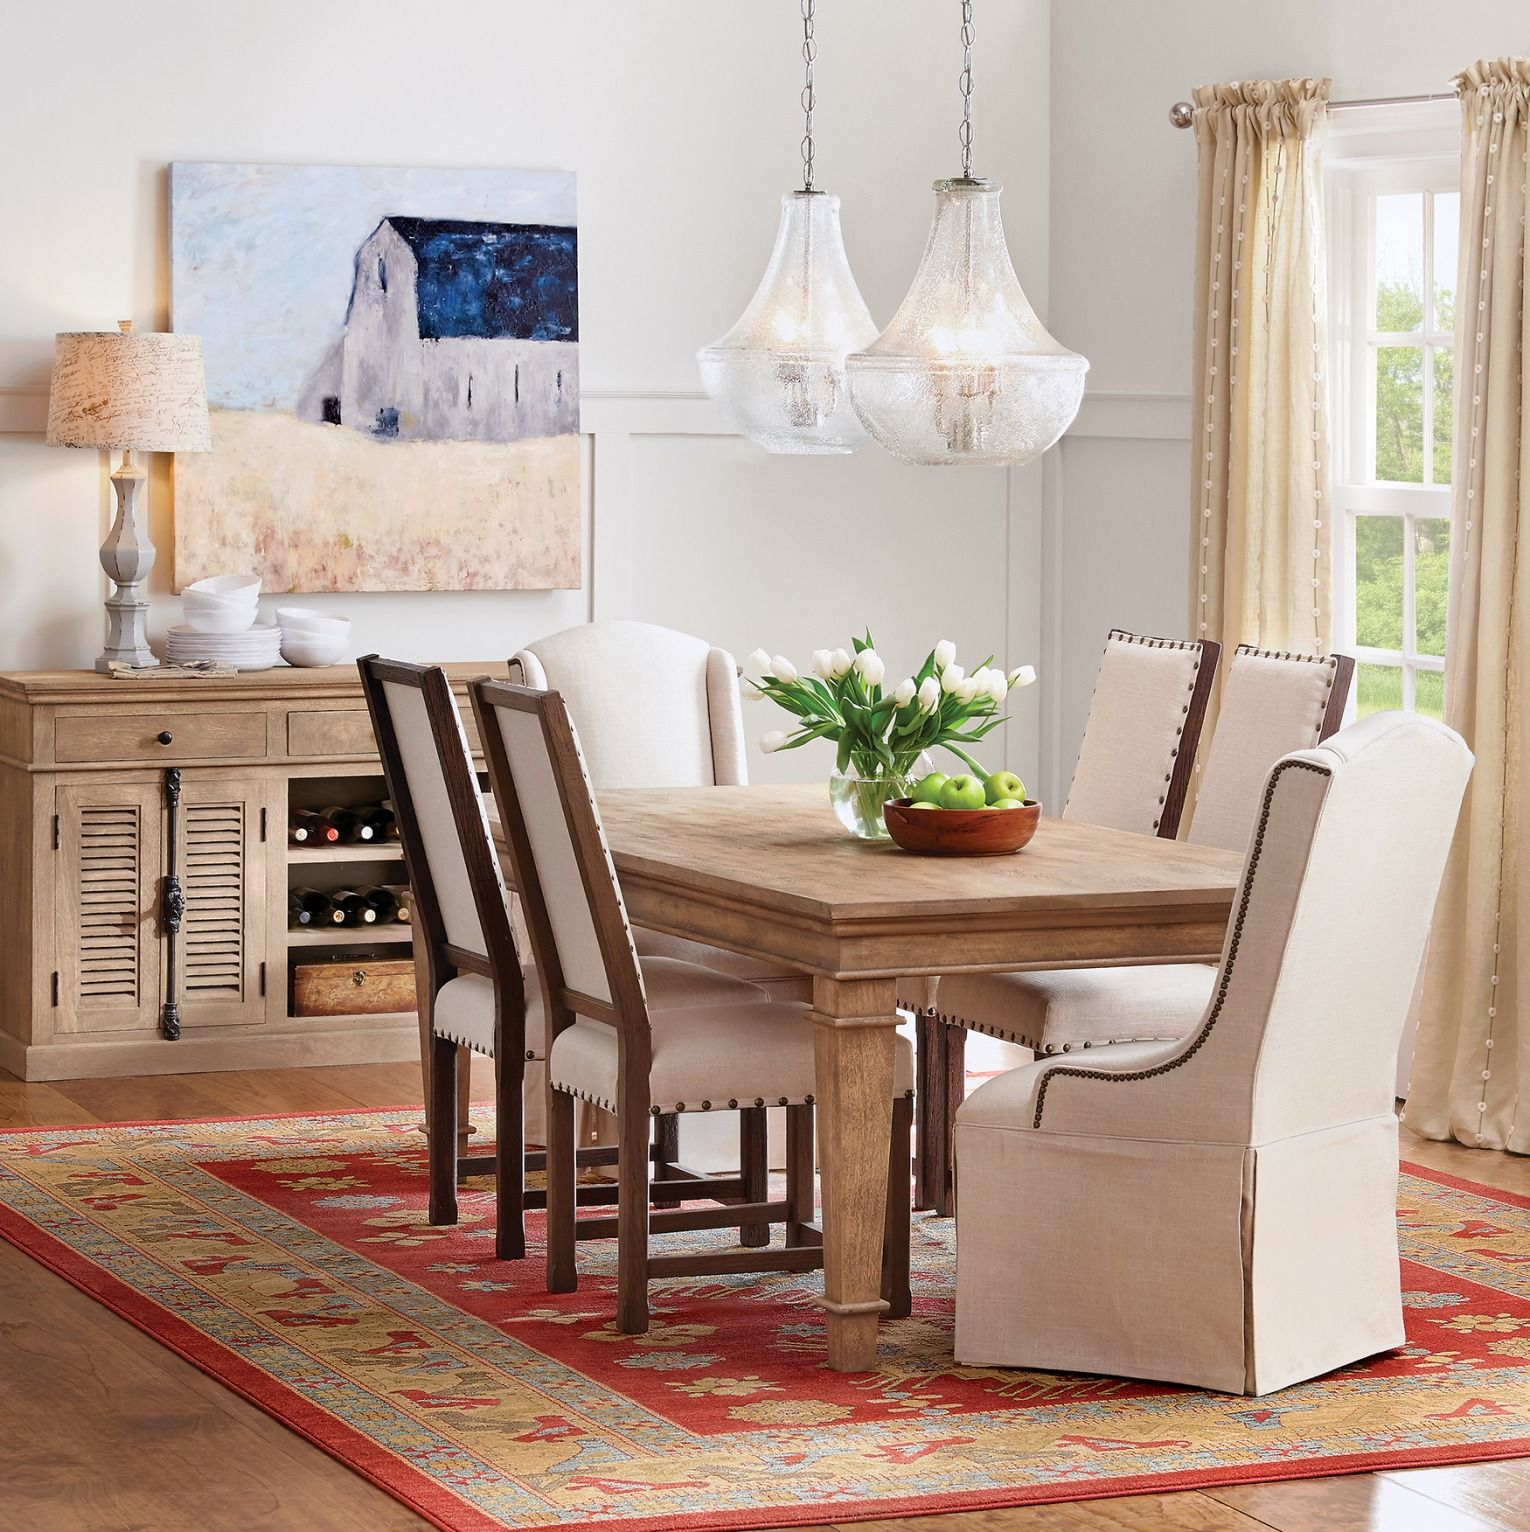 Sideboard Gorgeous Upholstered Chairs Substantial Dining Table